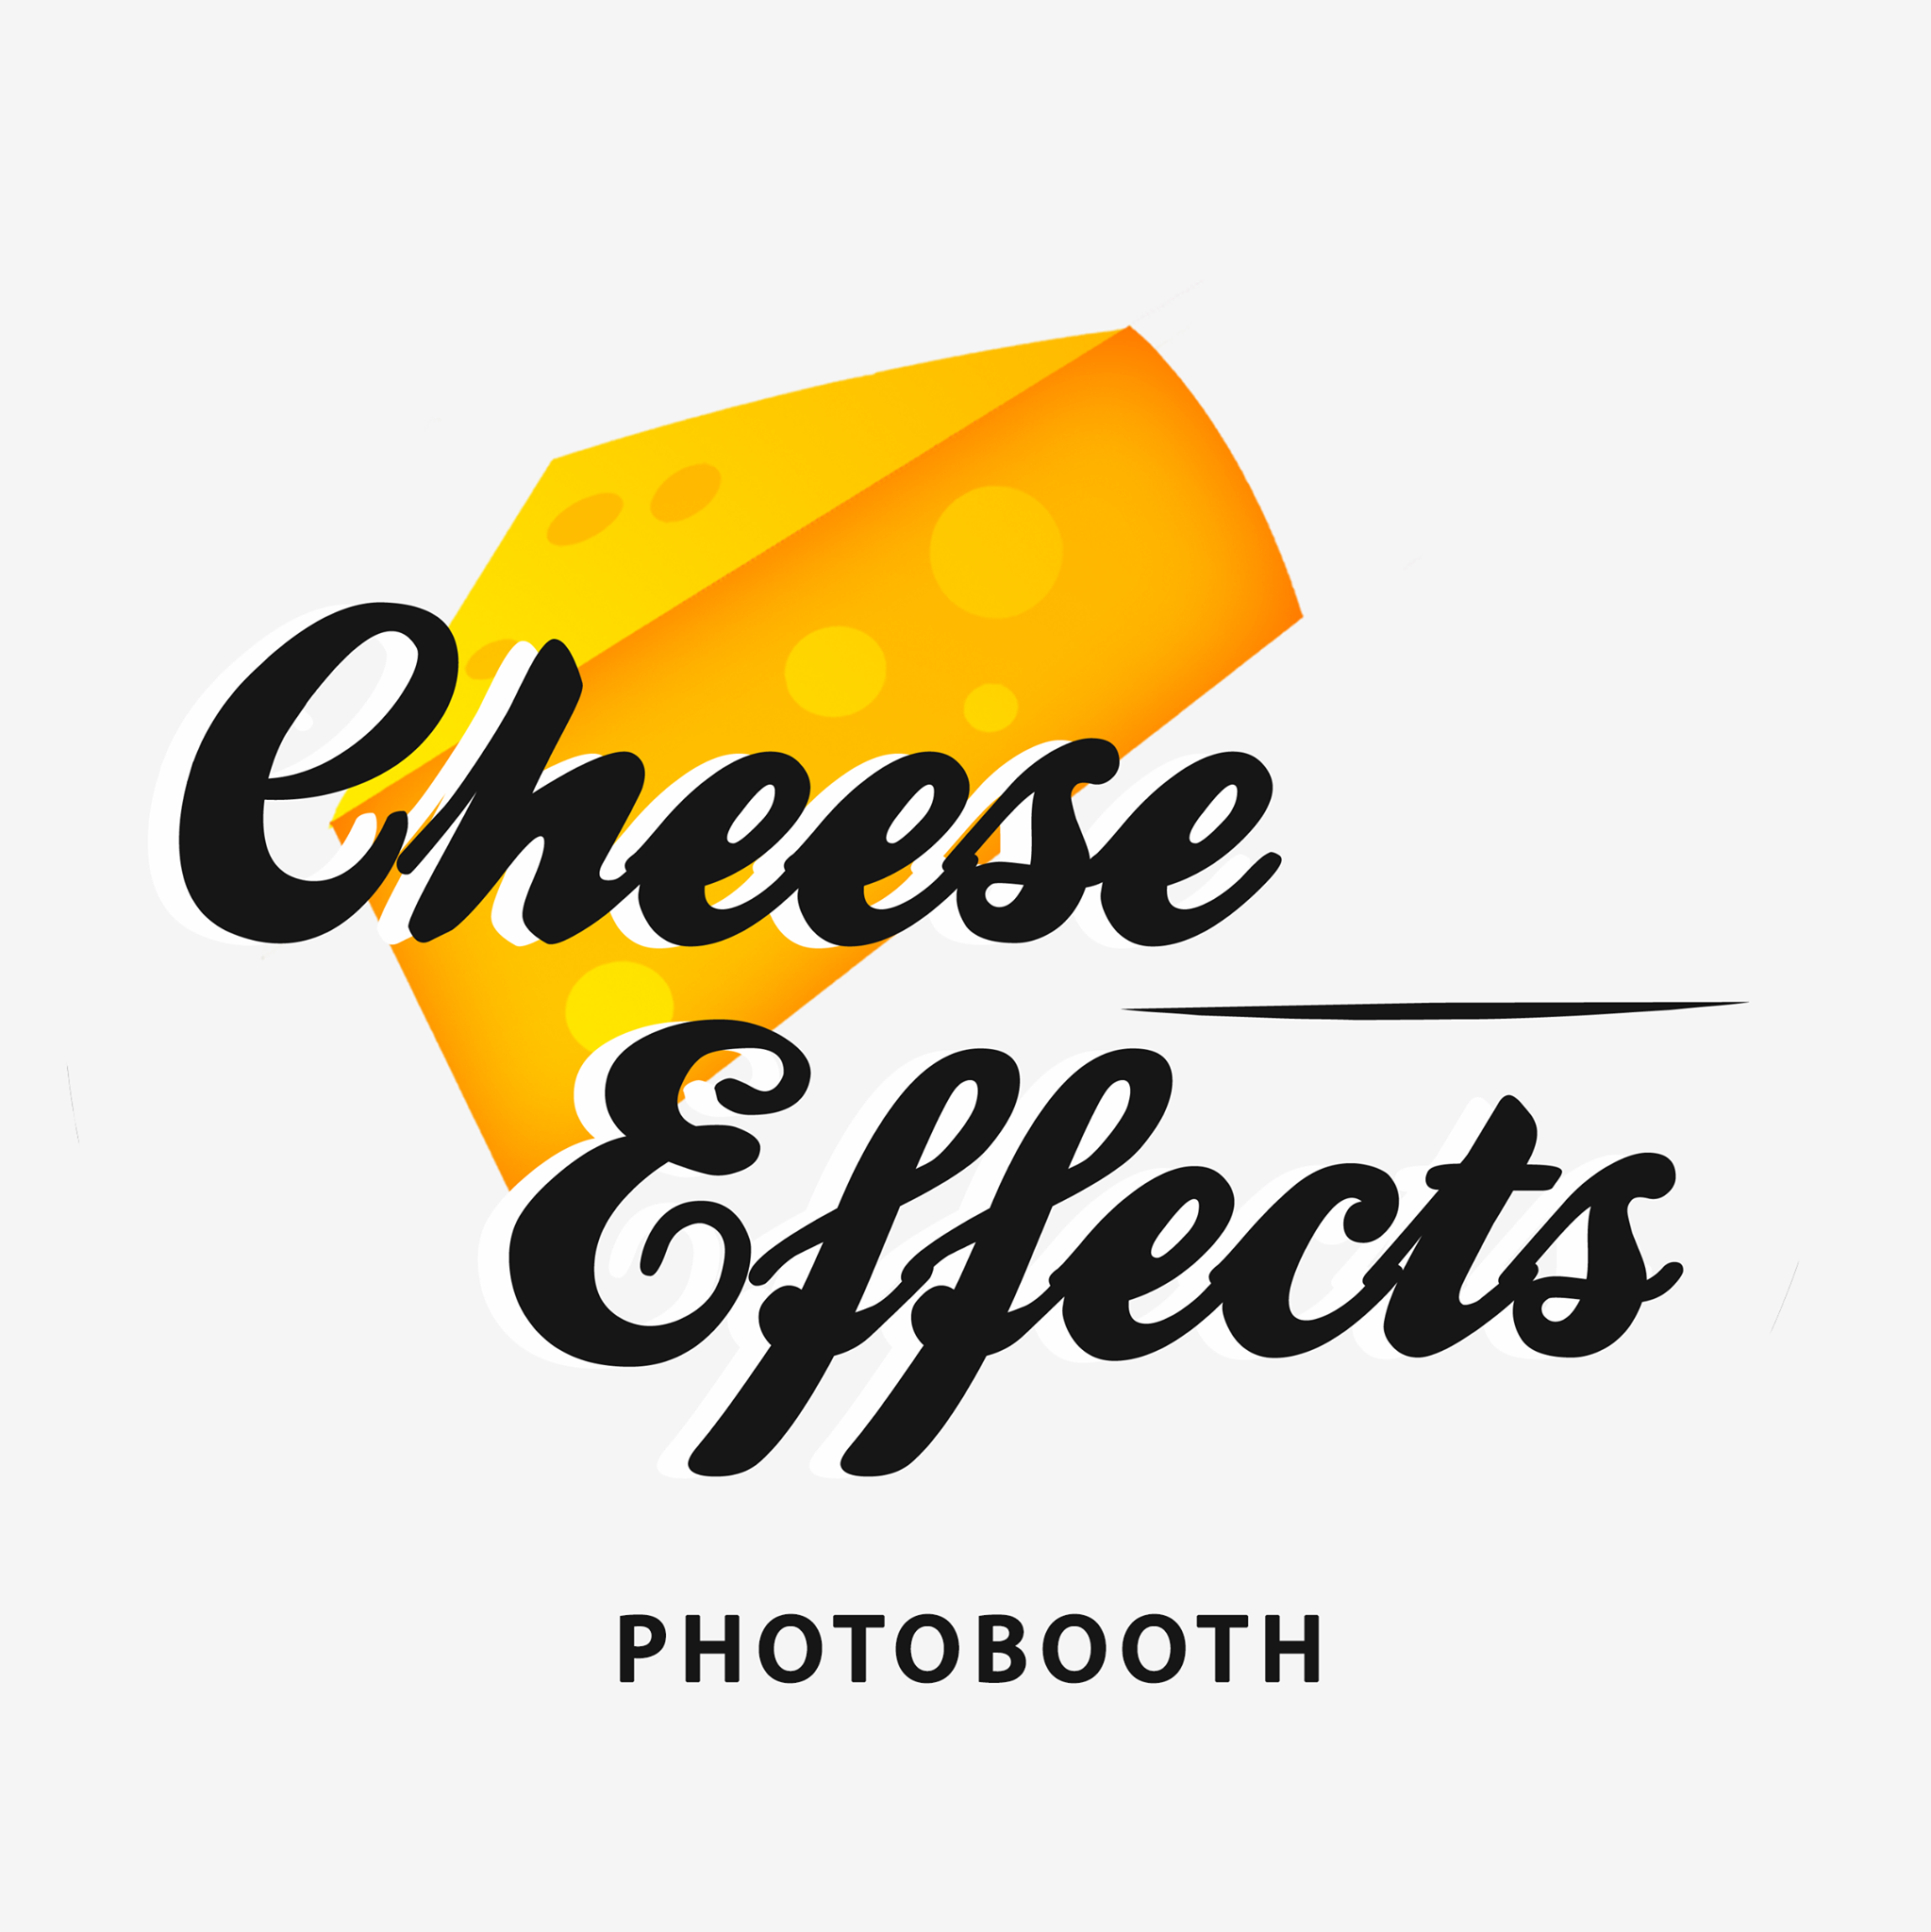 Cheese Effects Photobooth